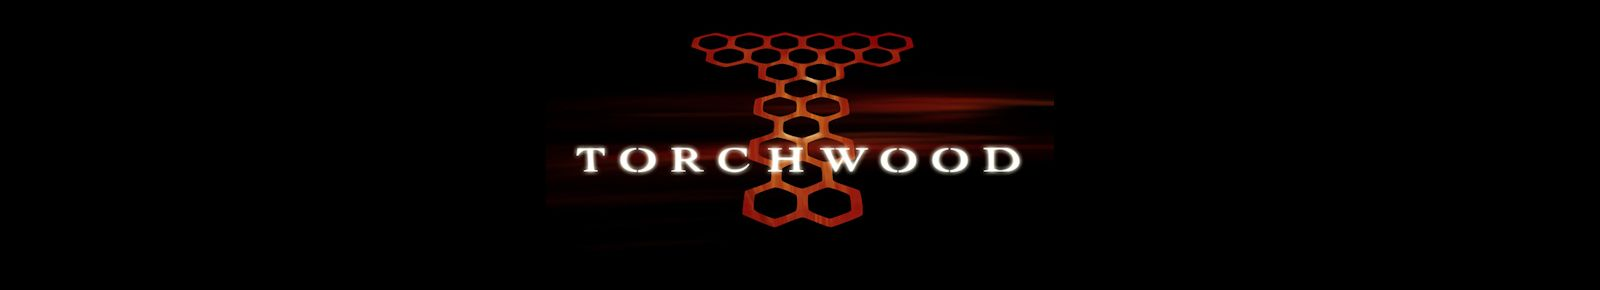 Torchwood banner